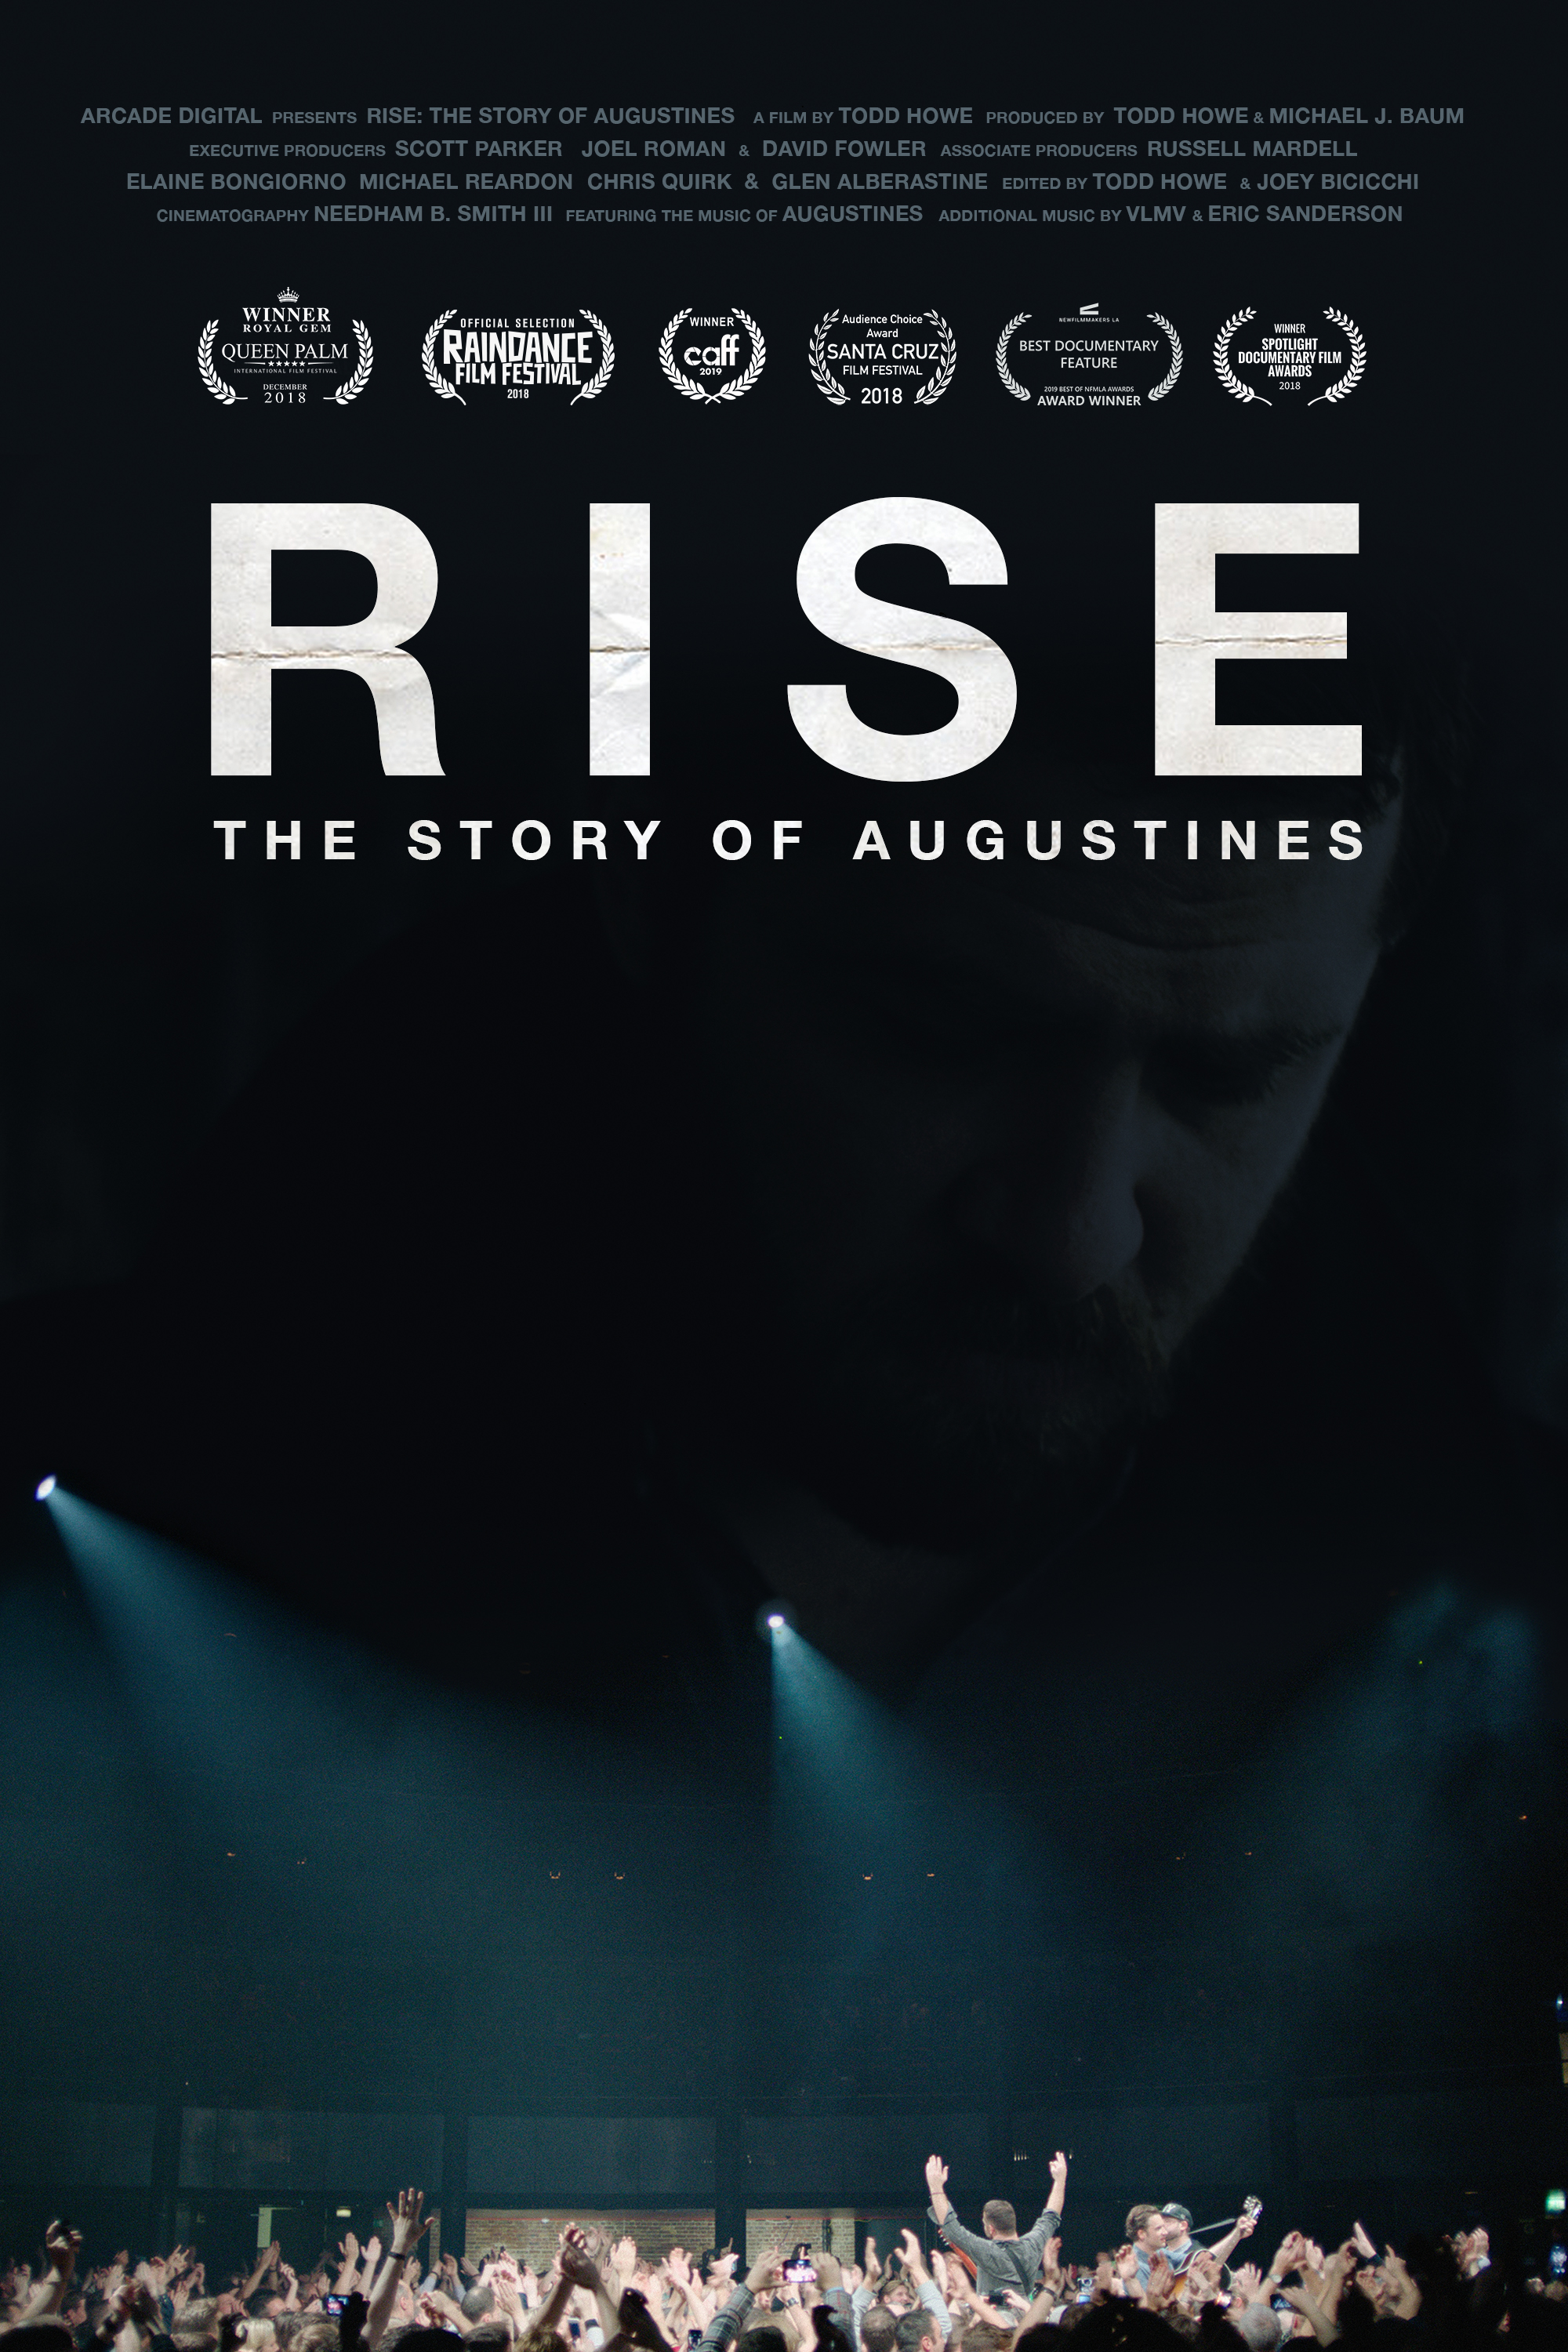 RISE-POSTER-FINAL-24x32-300DPI-NOBLEED-MAY2019.jpg